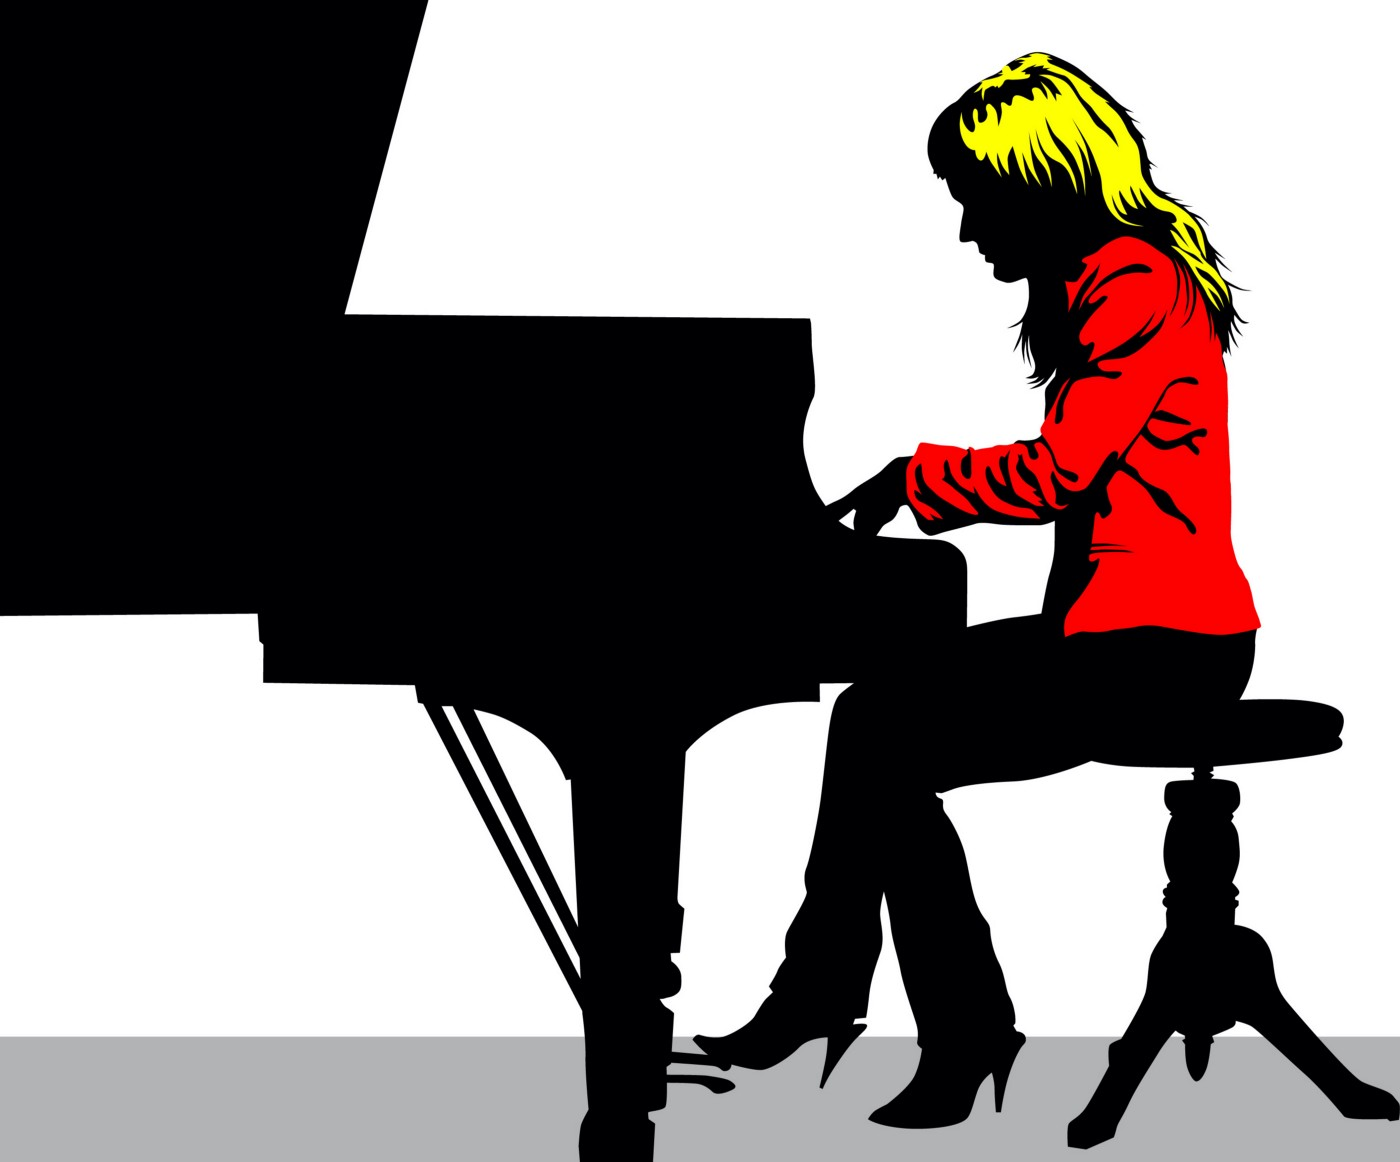 Formally dressed woman playing grand piano.